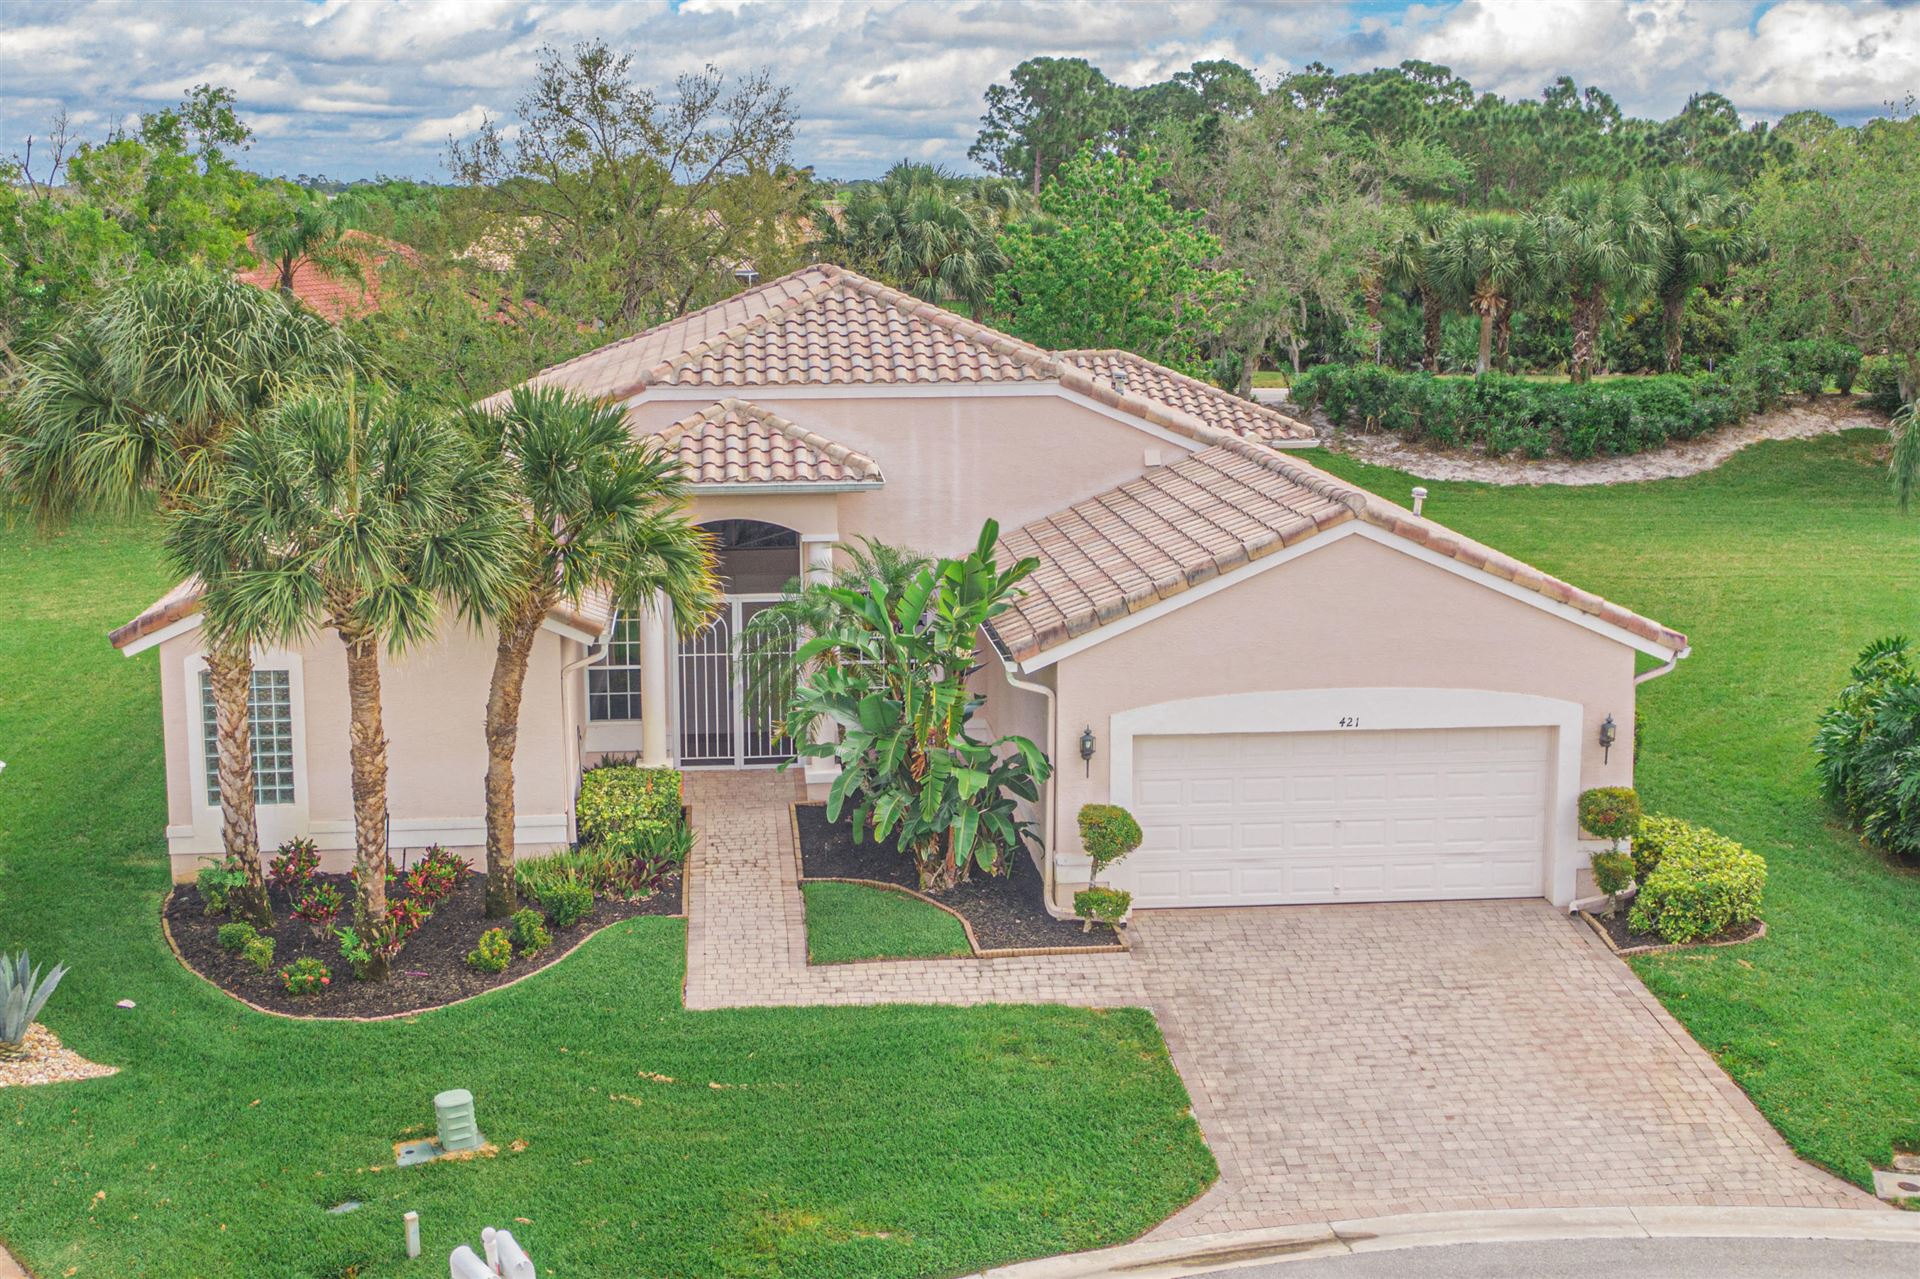 Photo of 421 NW Aqua Vista Lane, Port Saint Lucie, FL 34986 (MLS # RX-10699170)